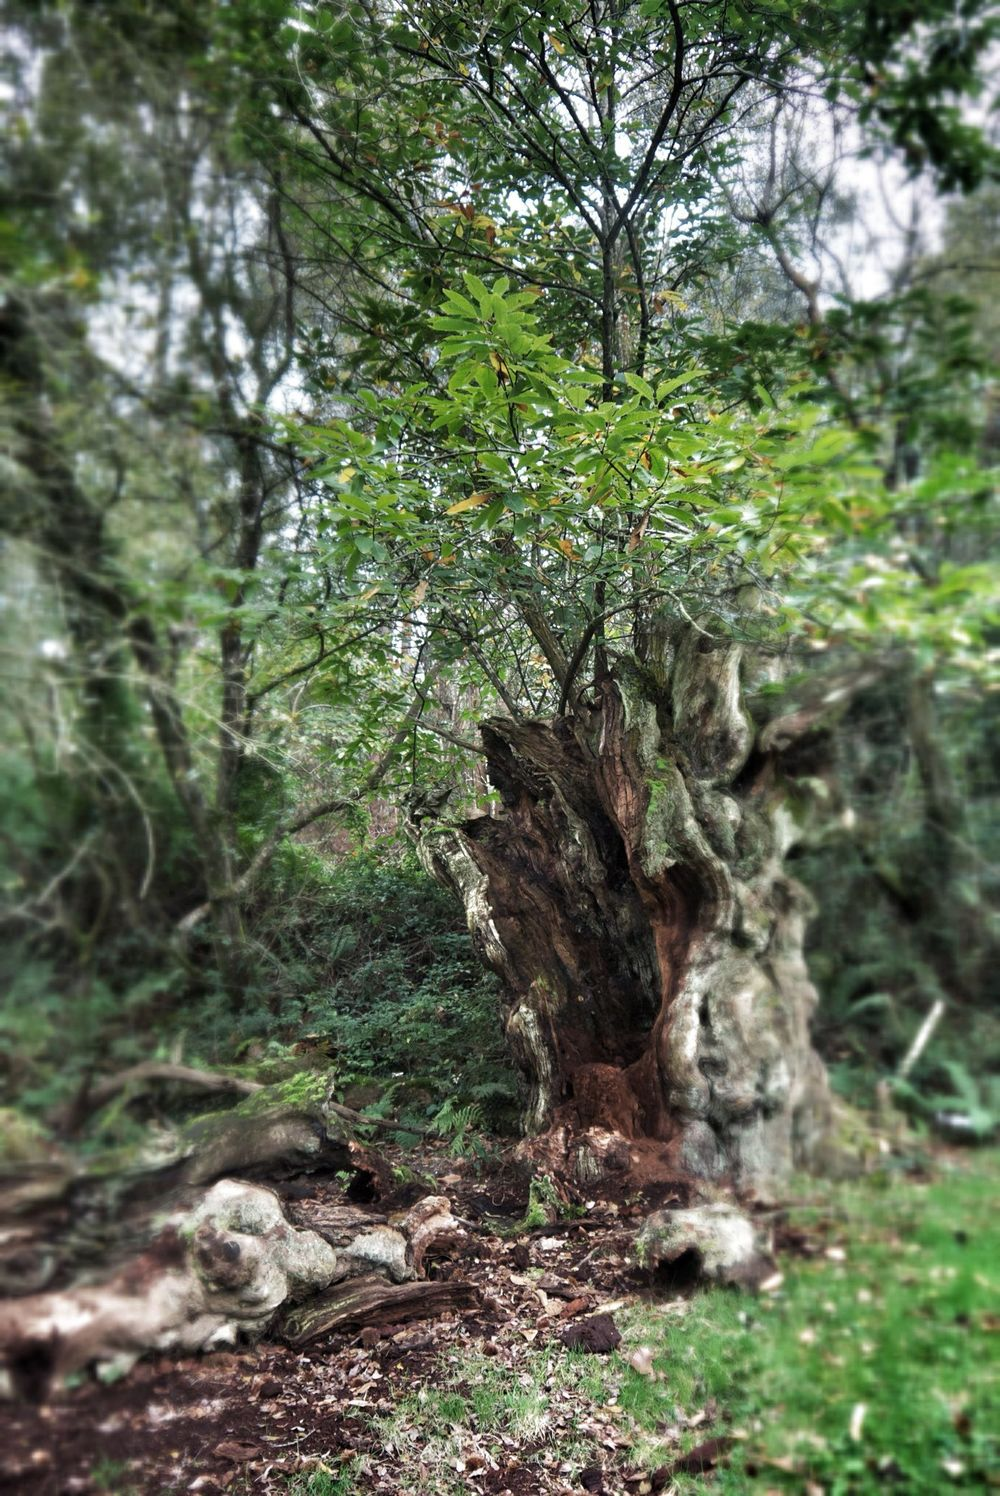 An ancient chestnut tree in the grounds